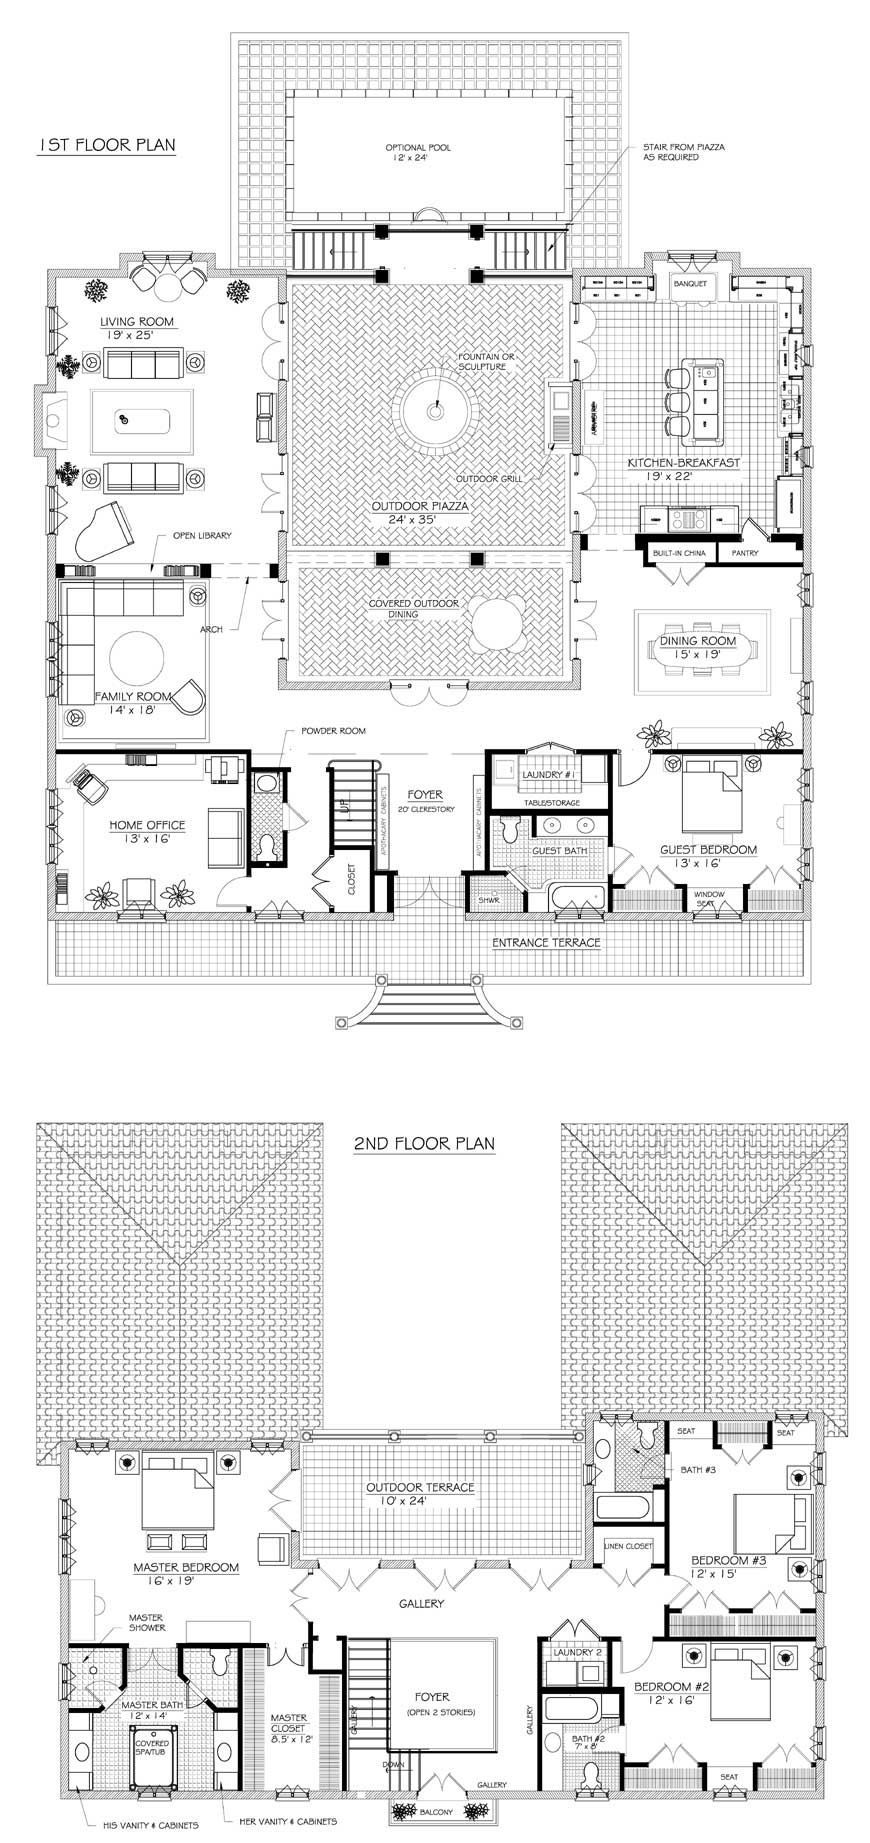 house floor plans no hallways. I have no idea where this plan comes from  but a U shaped house intrigues